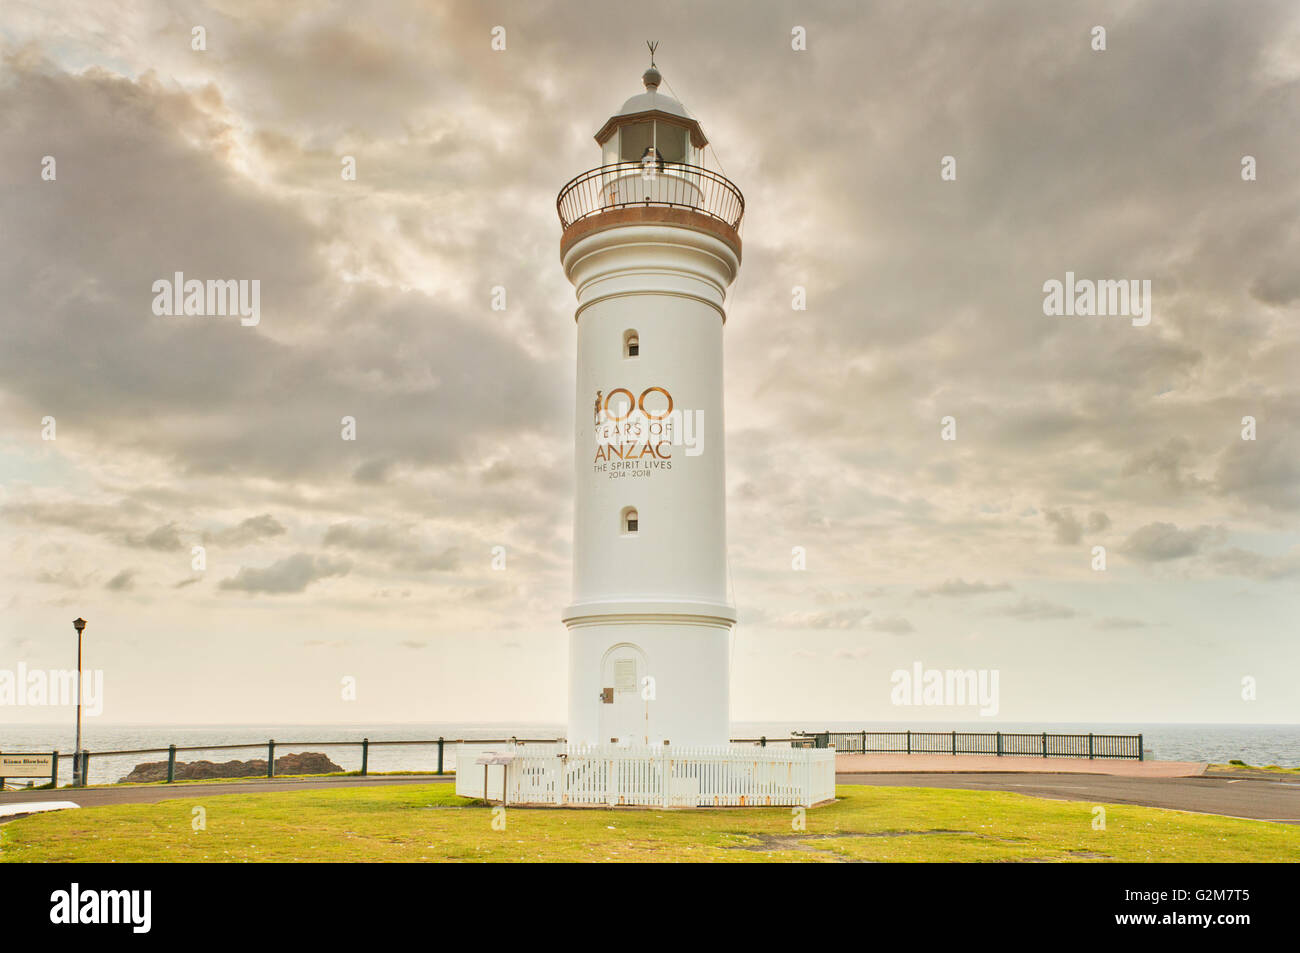 Kiama Lighthouse with its ANZAC Day 100 anniversary tribute. - Stock Image